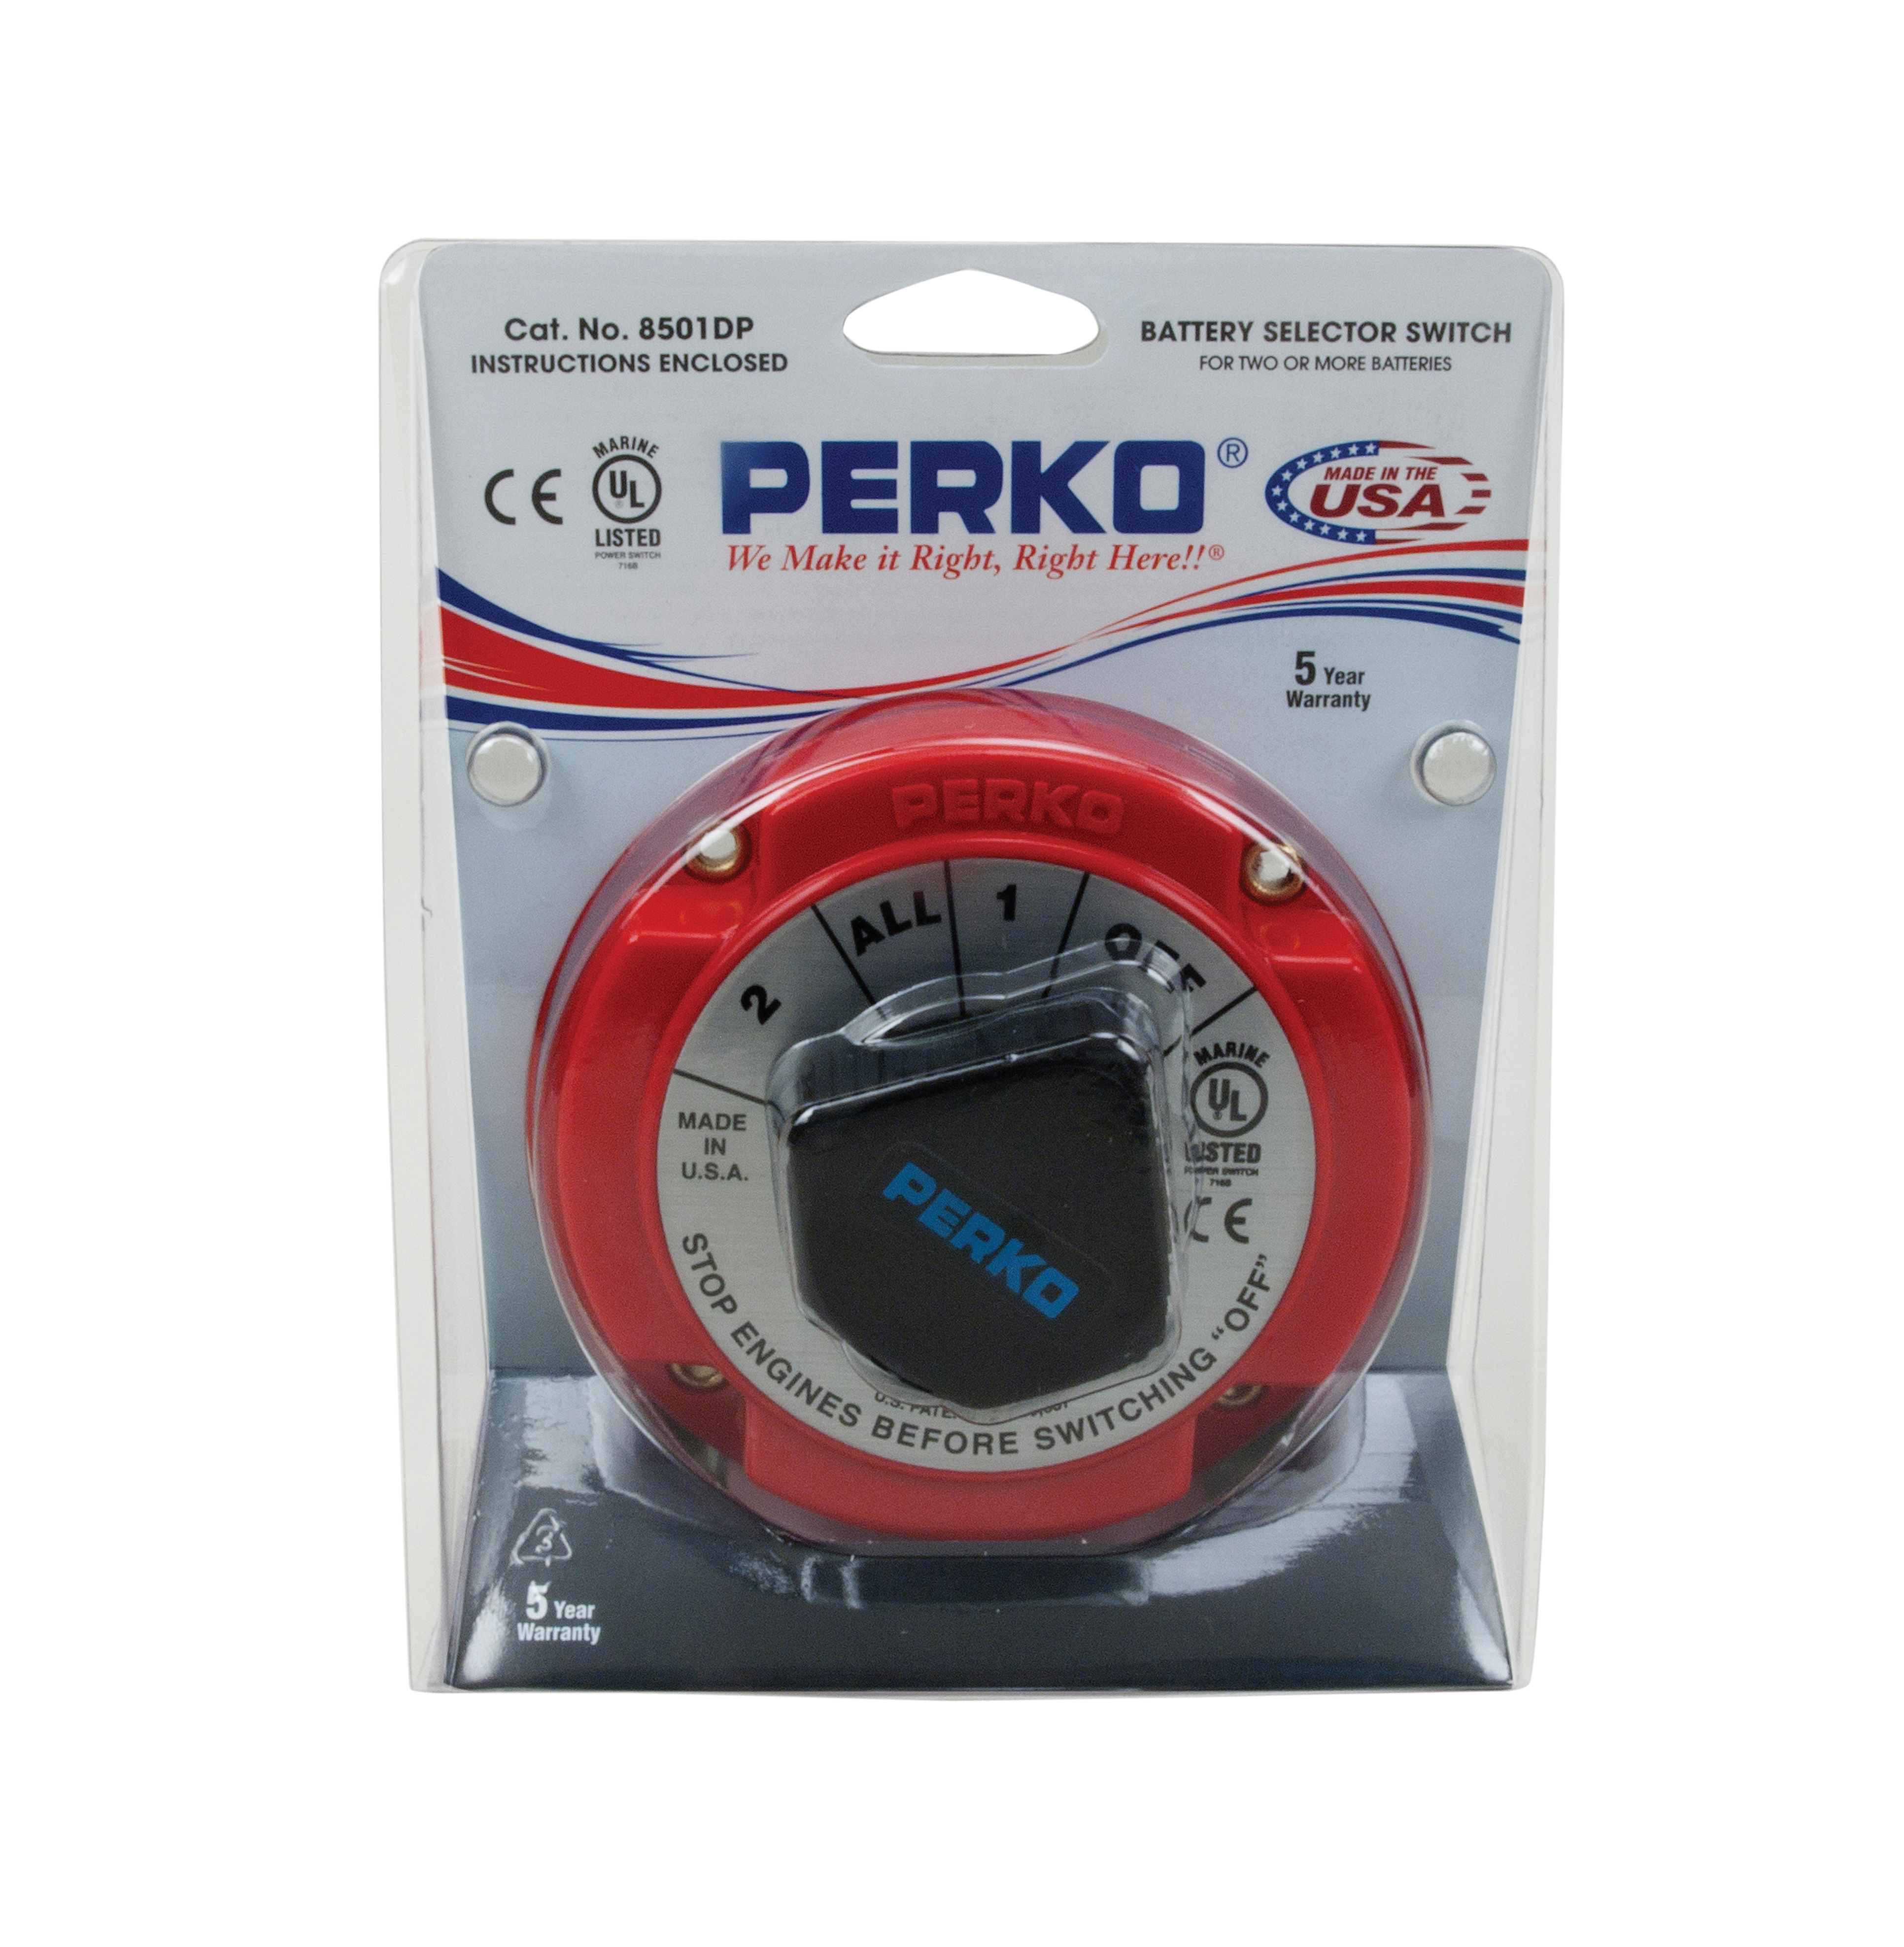 Perko inc catalog battery switches medium duty battery perko inc catalog battery switches medium duty battery selector switch 8501 publicscrutiny Image collections